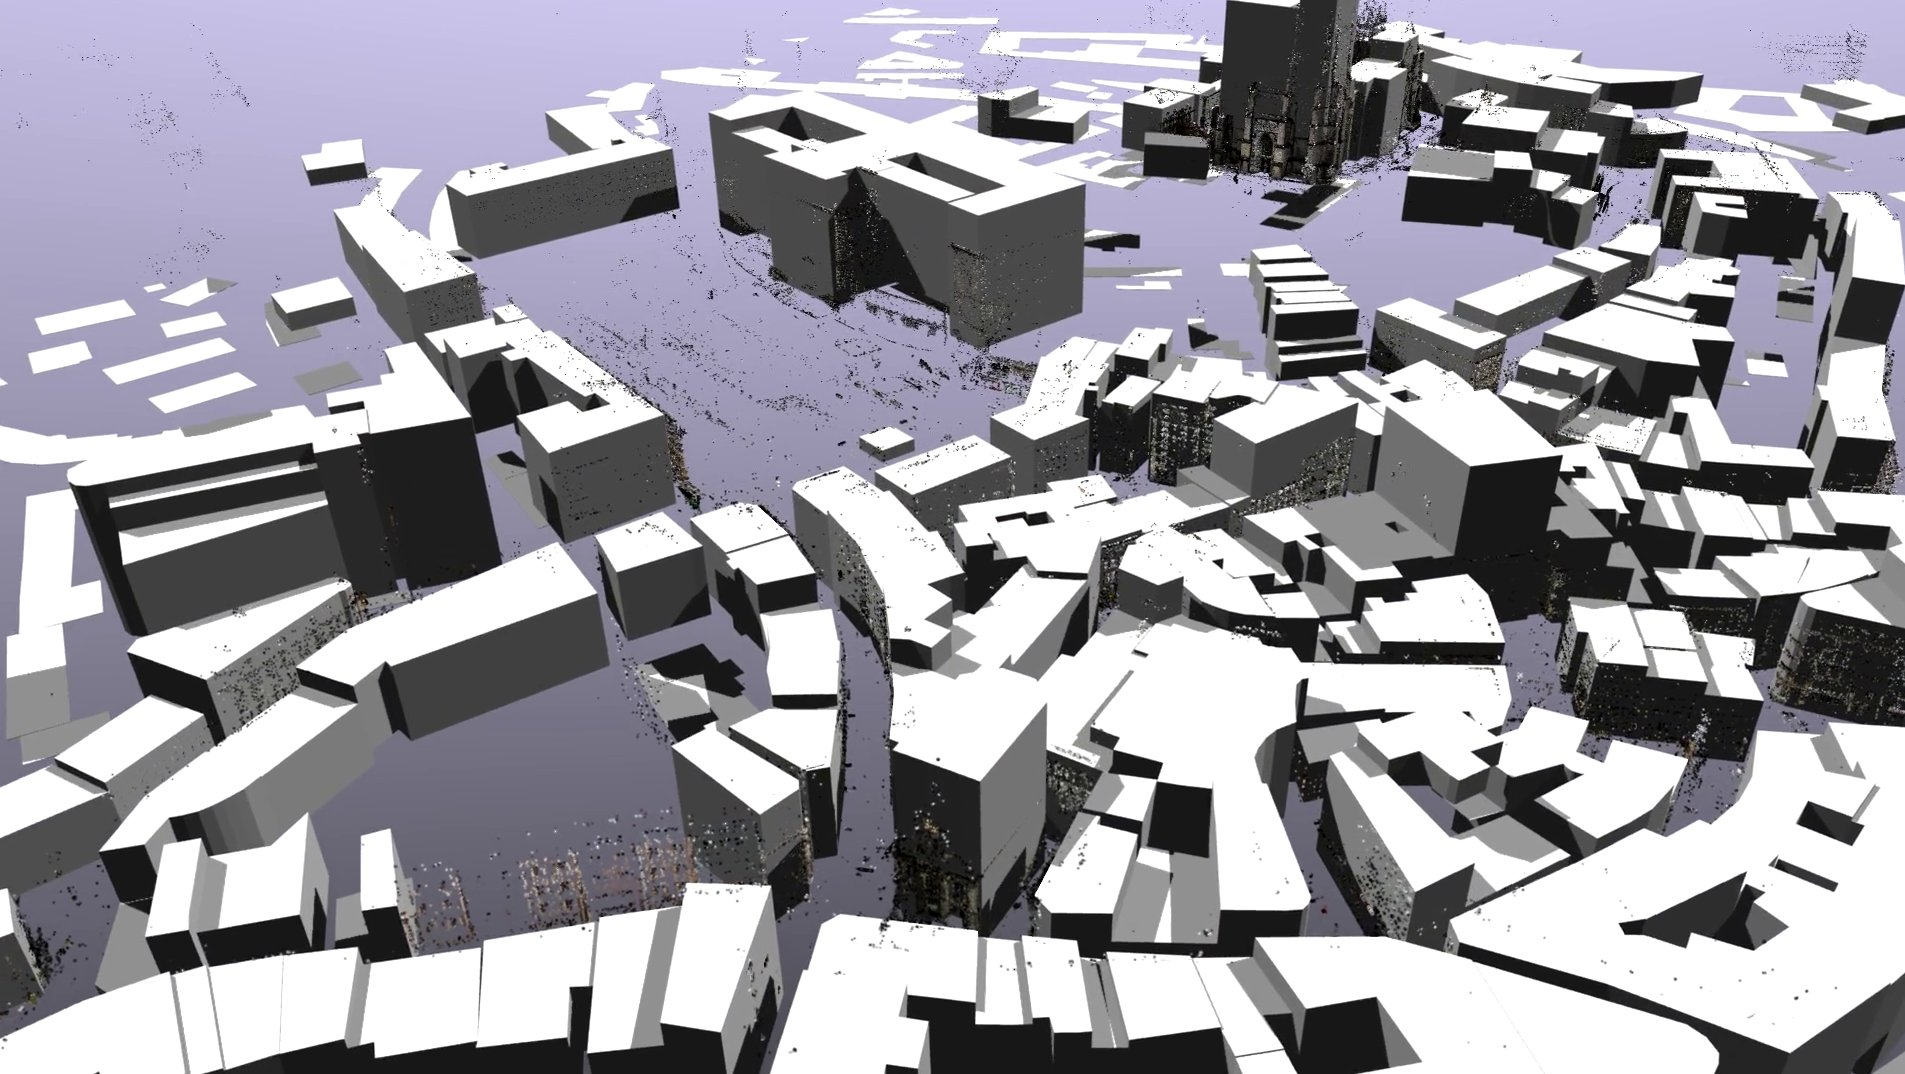 3D rendering of the Lausanne dataset